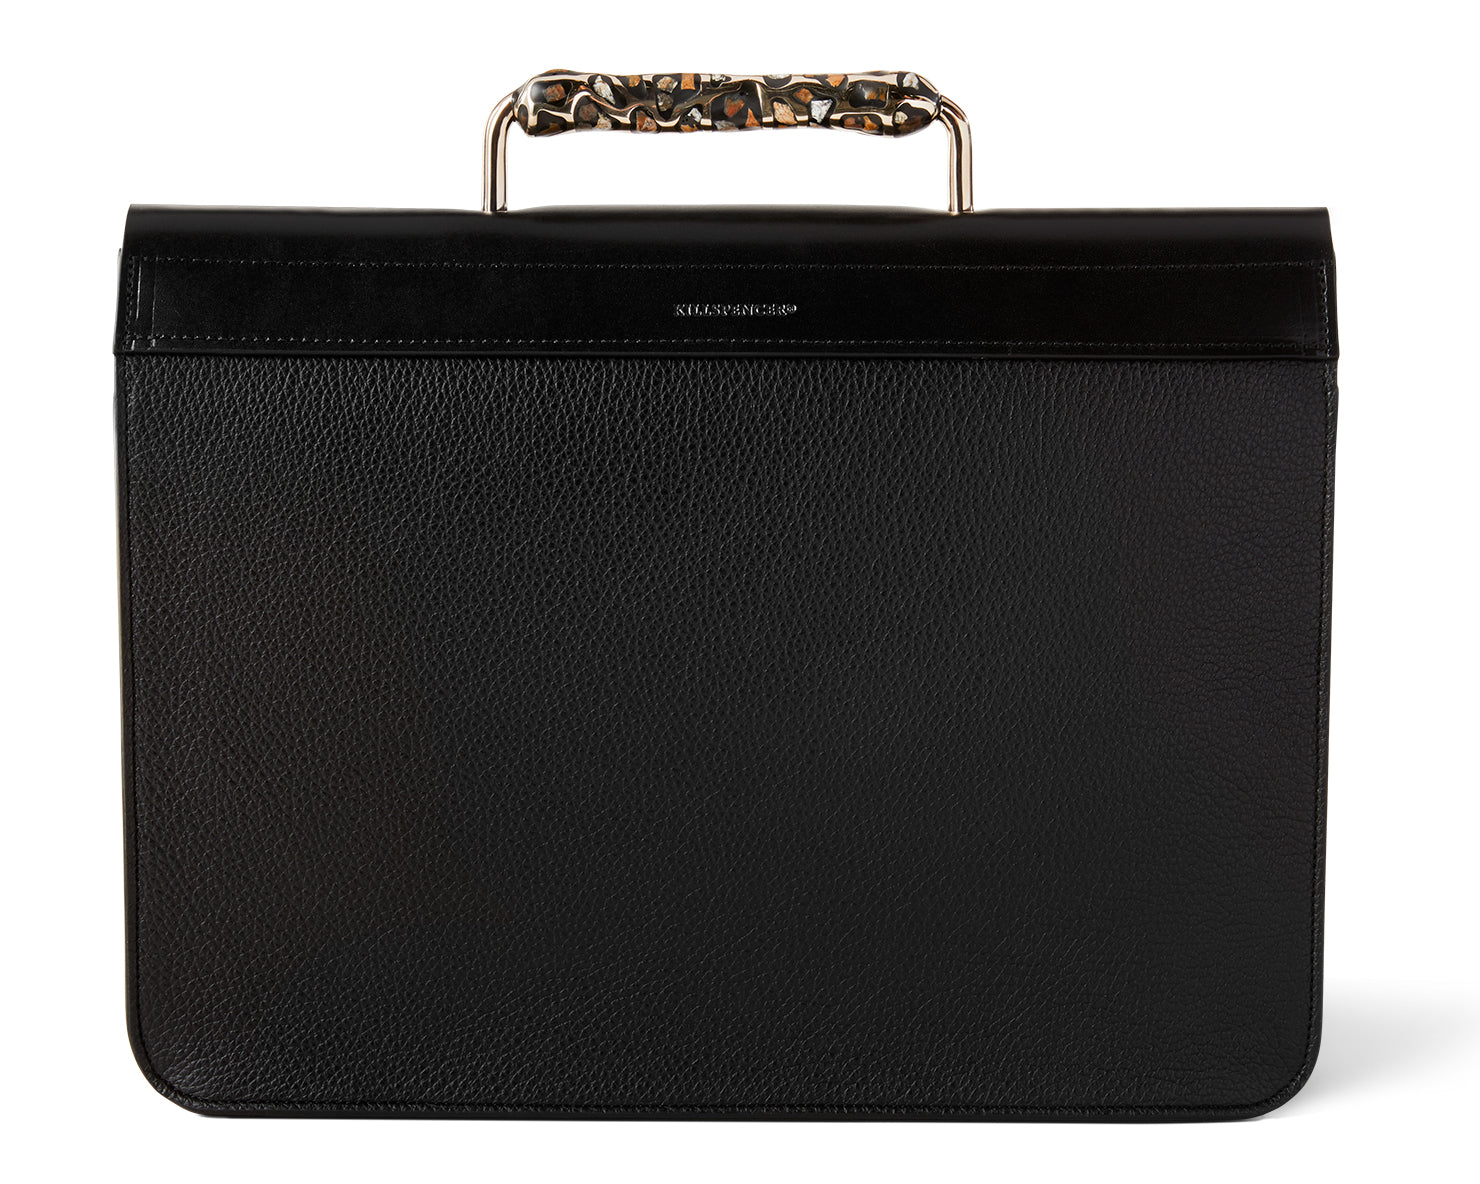 KILLSPENCER x DAVID WISEMAN FLETCHER BRIEFCASE | KILLSPENCER® - Black Leather